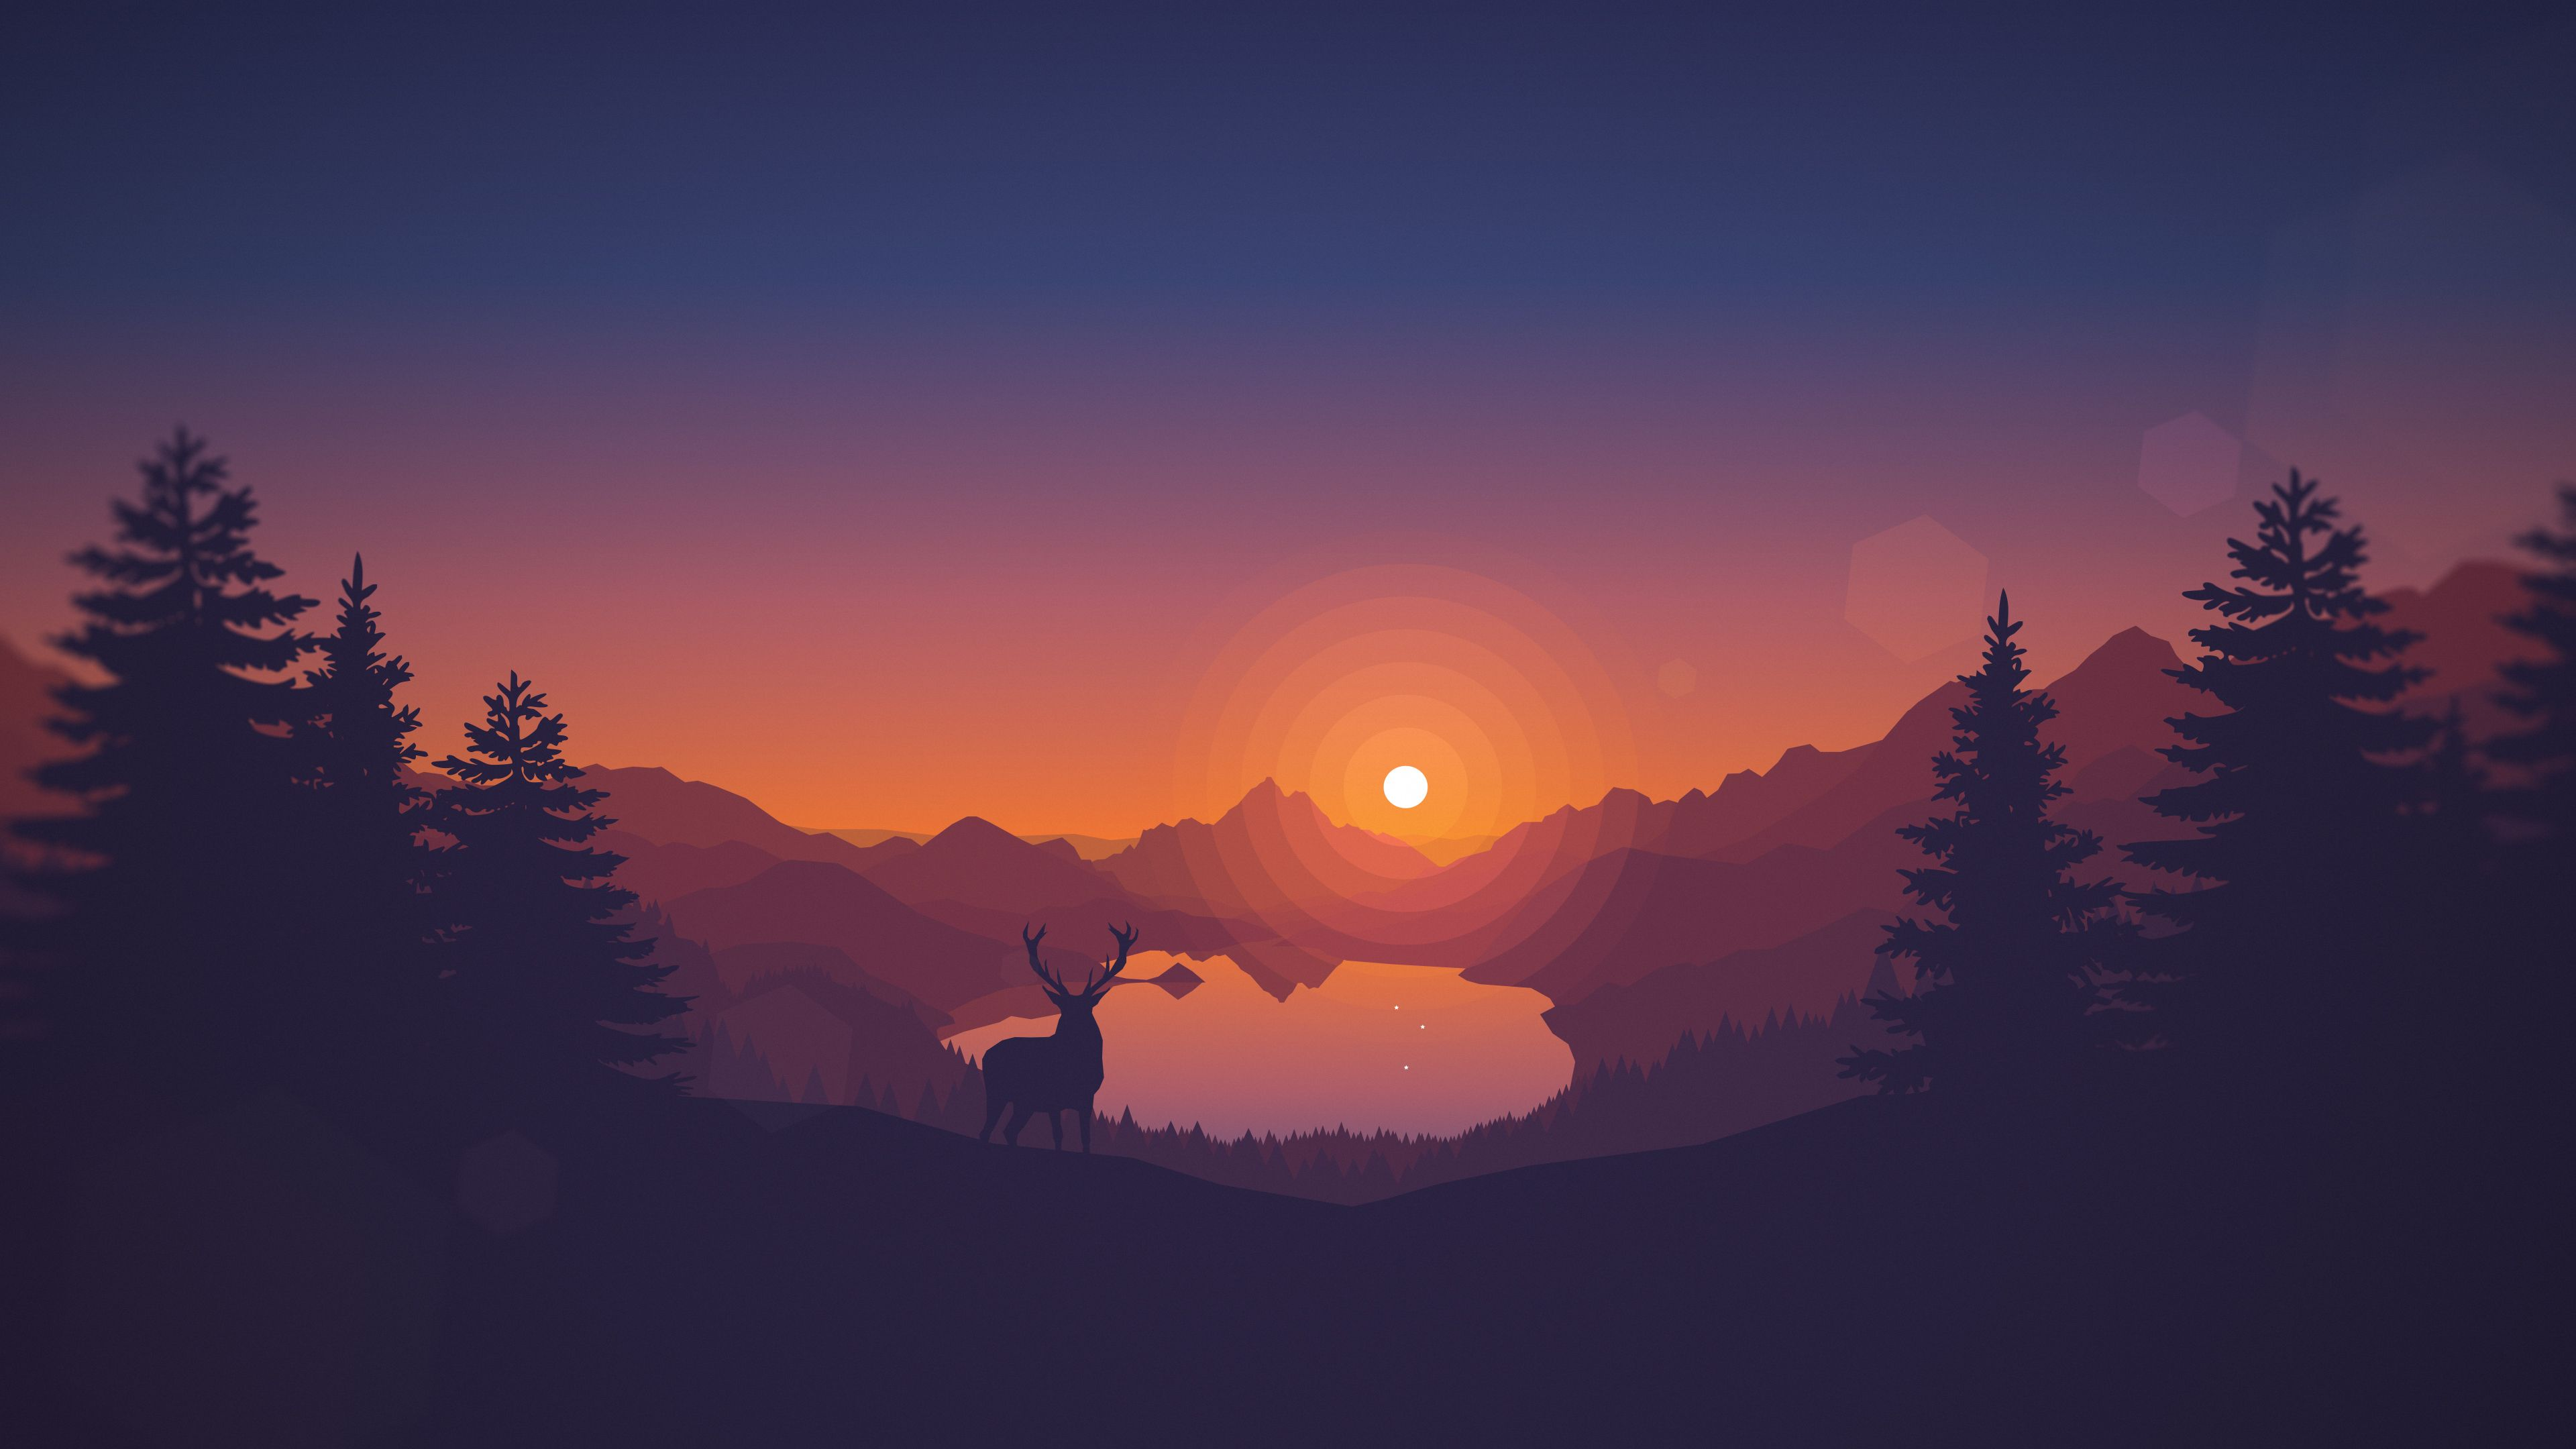 Firewatch Wallpaper Hd Download Landscape Wallpaper Minimalist Wallpaper Sunset Wallpaper